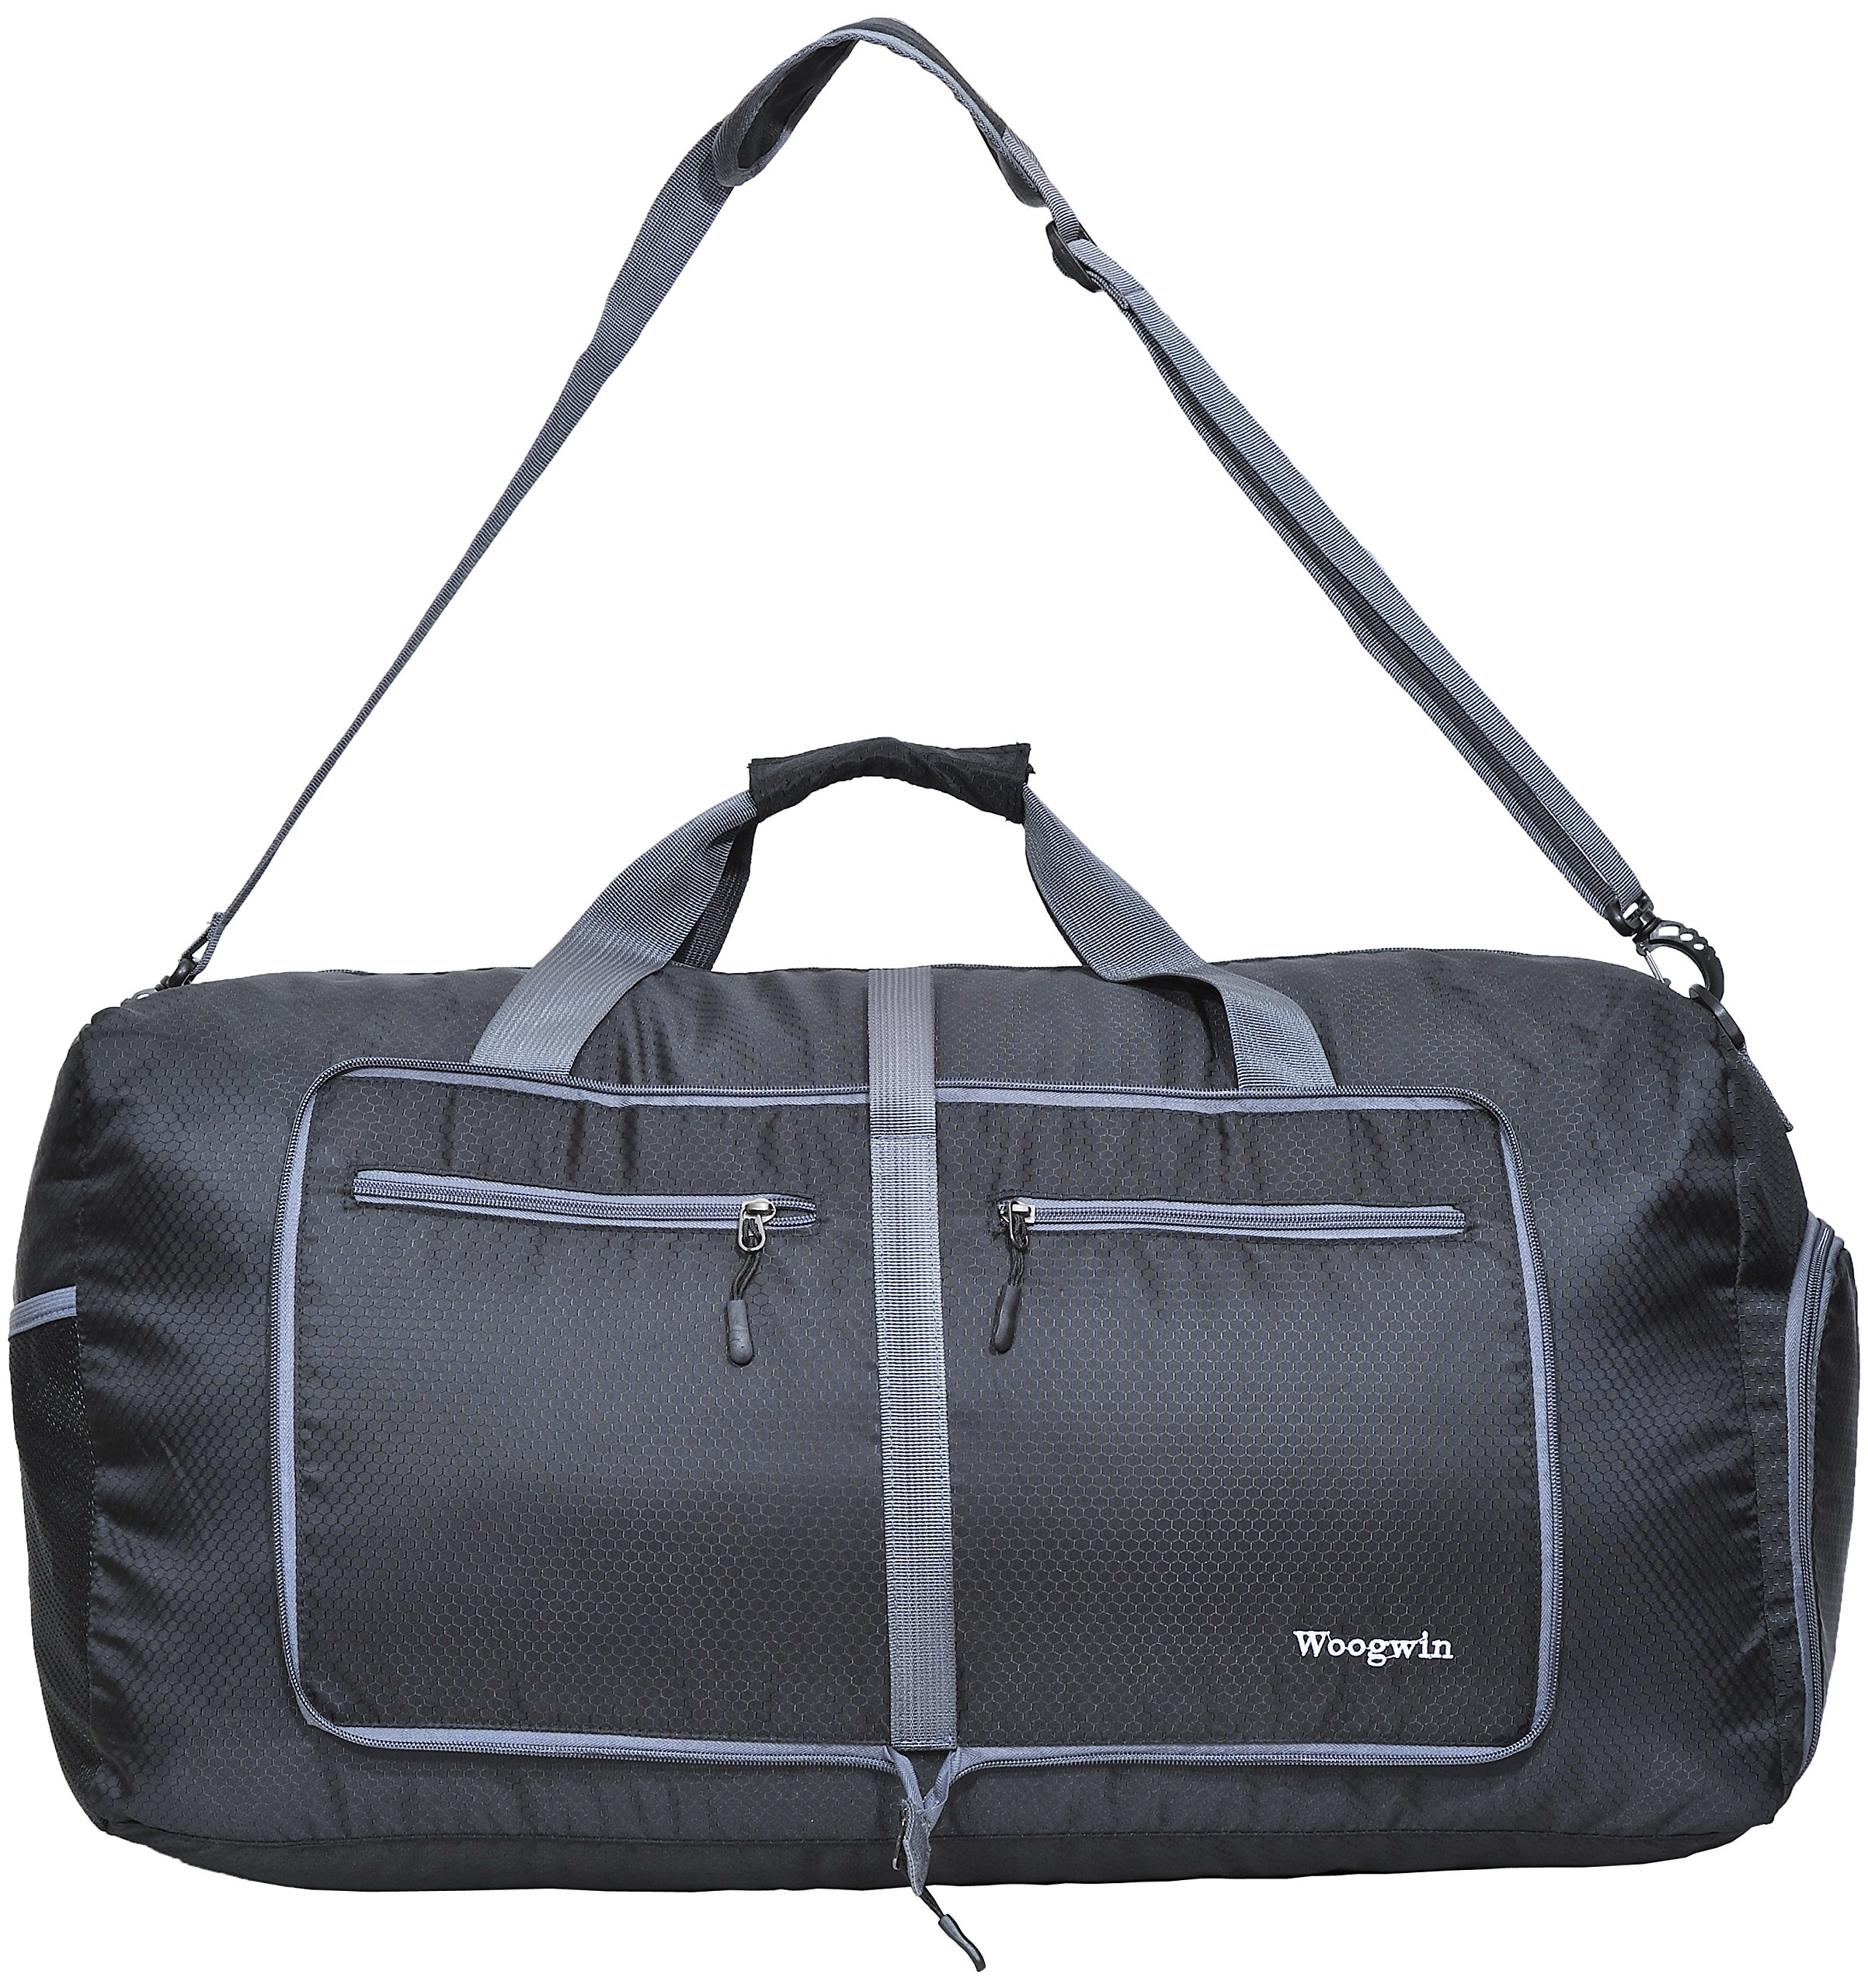 Woogwin Womens & Mens Travel Duffel Bag 60L Foldable Duffle Bags For Luggage Gym Sports (Black) by Woogwin